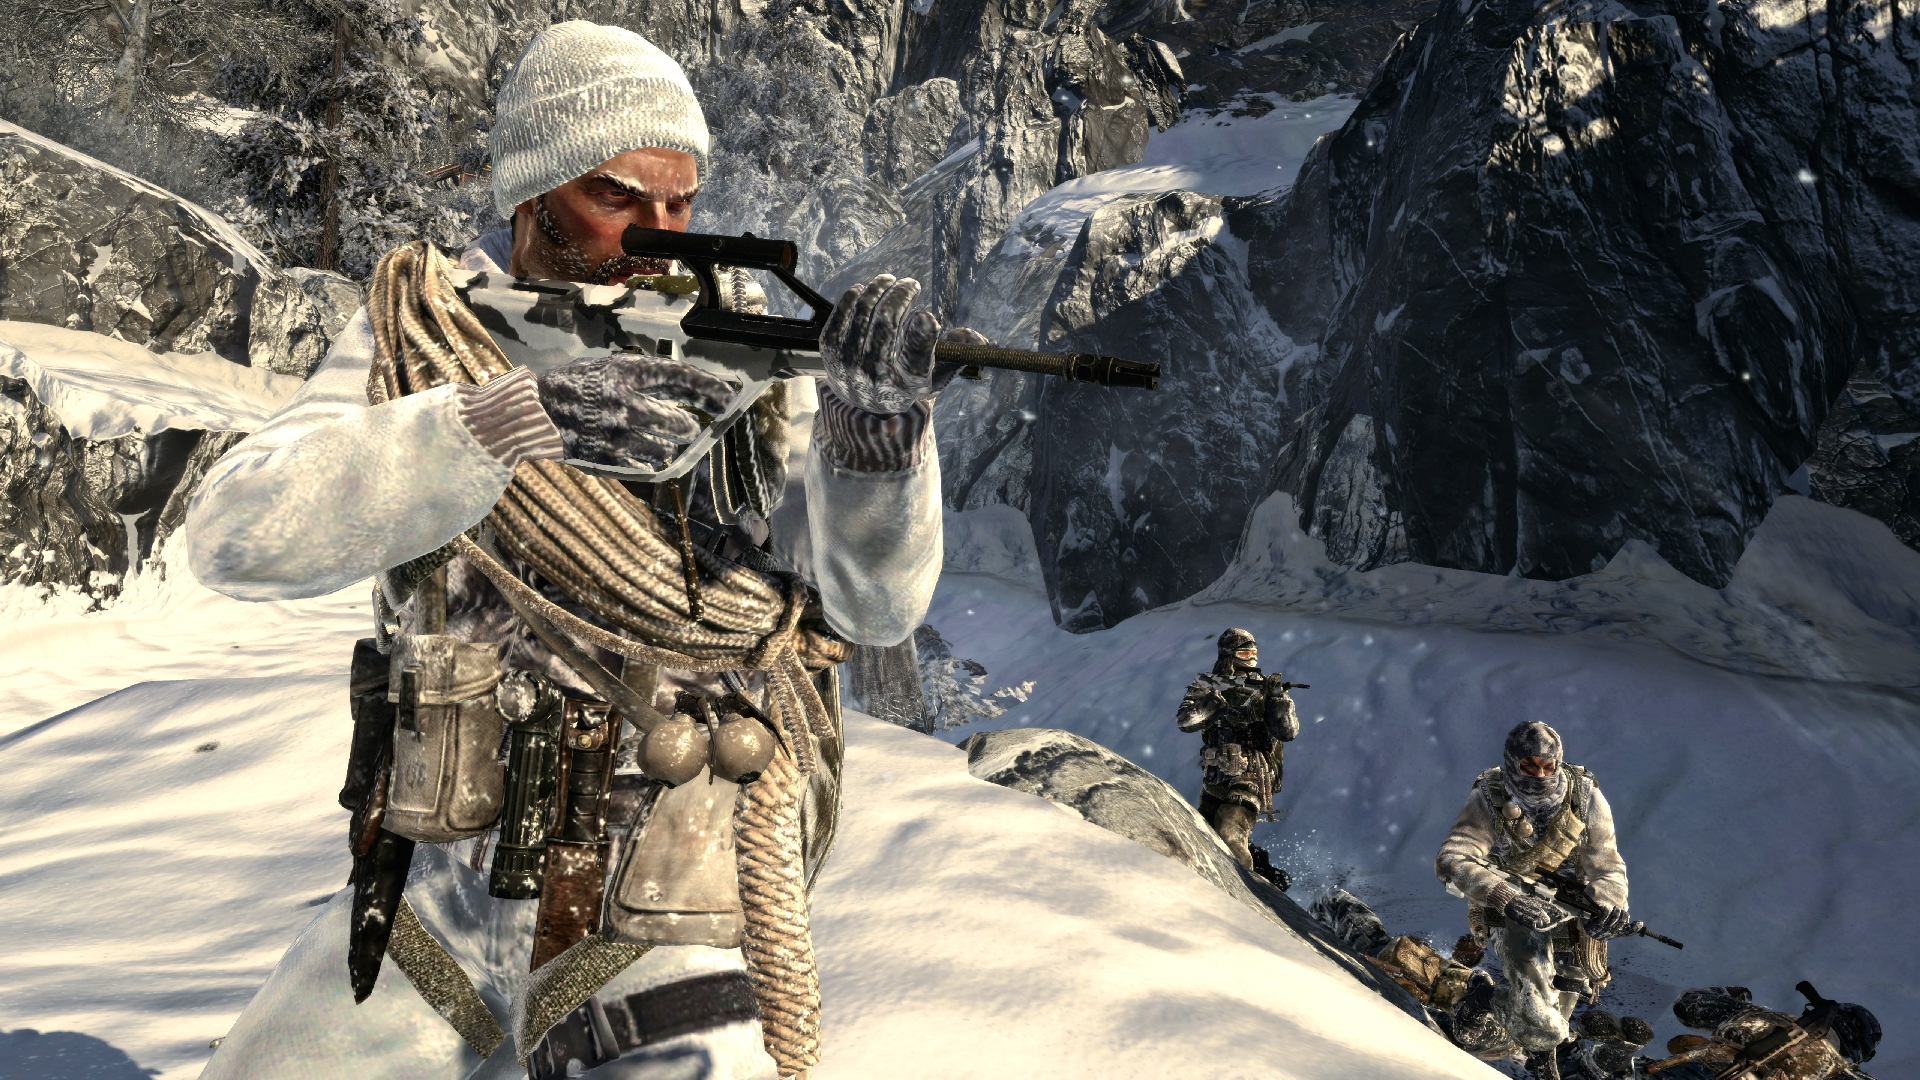 18-call-of-duty-black-ops-screenshot